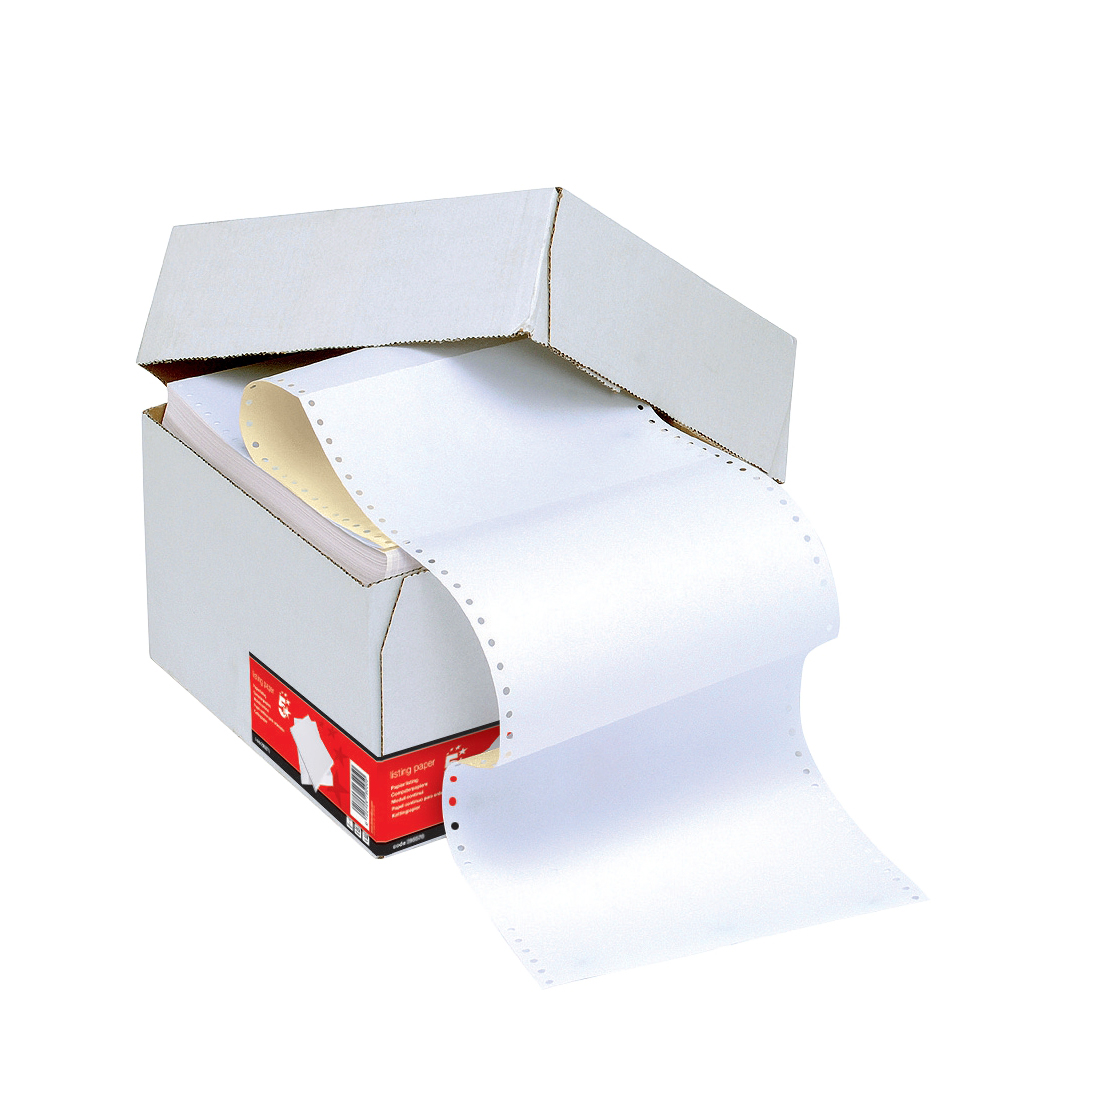 5 Star Office Listing Paper 2-Part Microperforated Carbonless 1000 Sheets per Box A4 2 Colours 1 Box